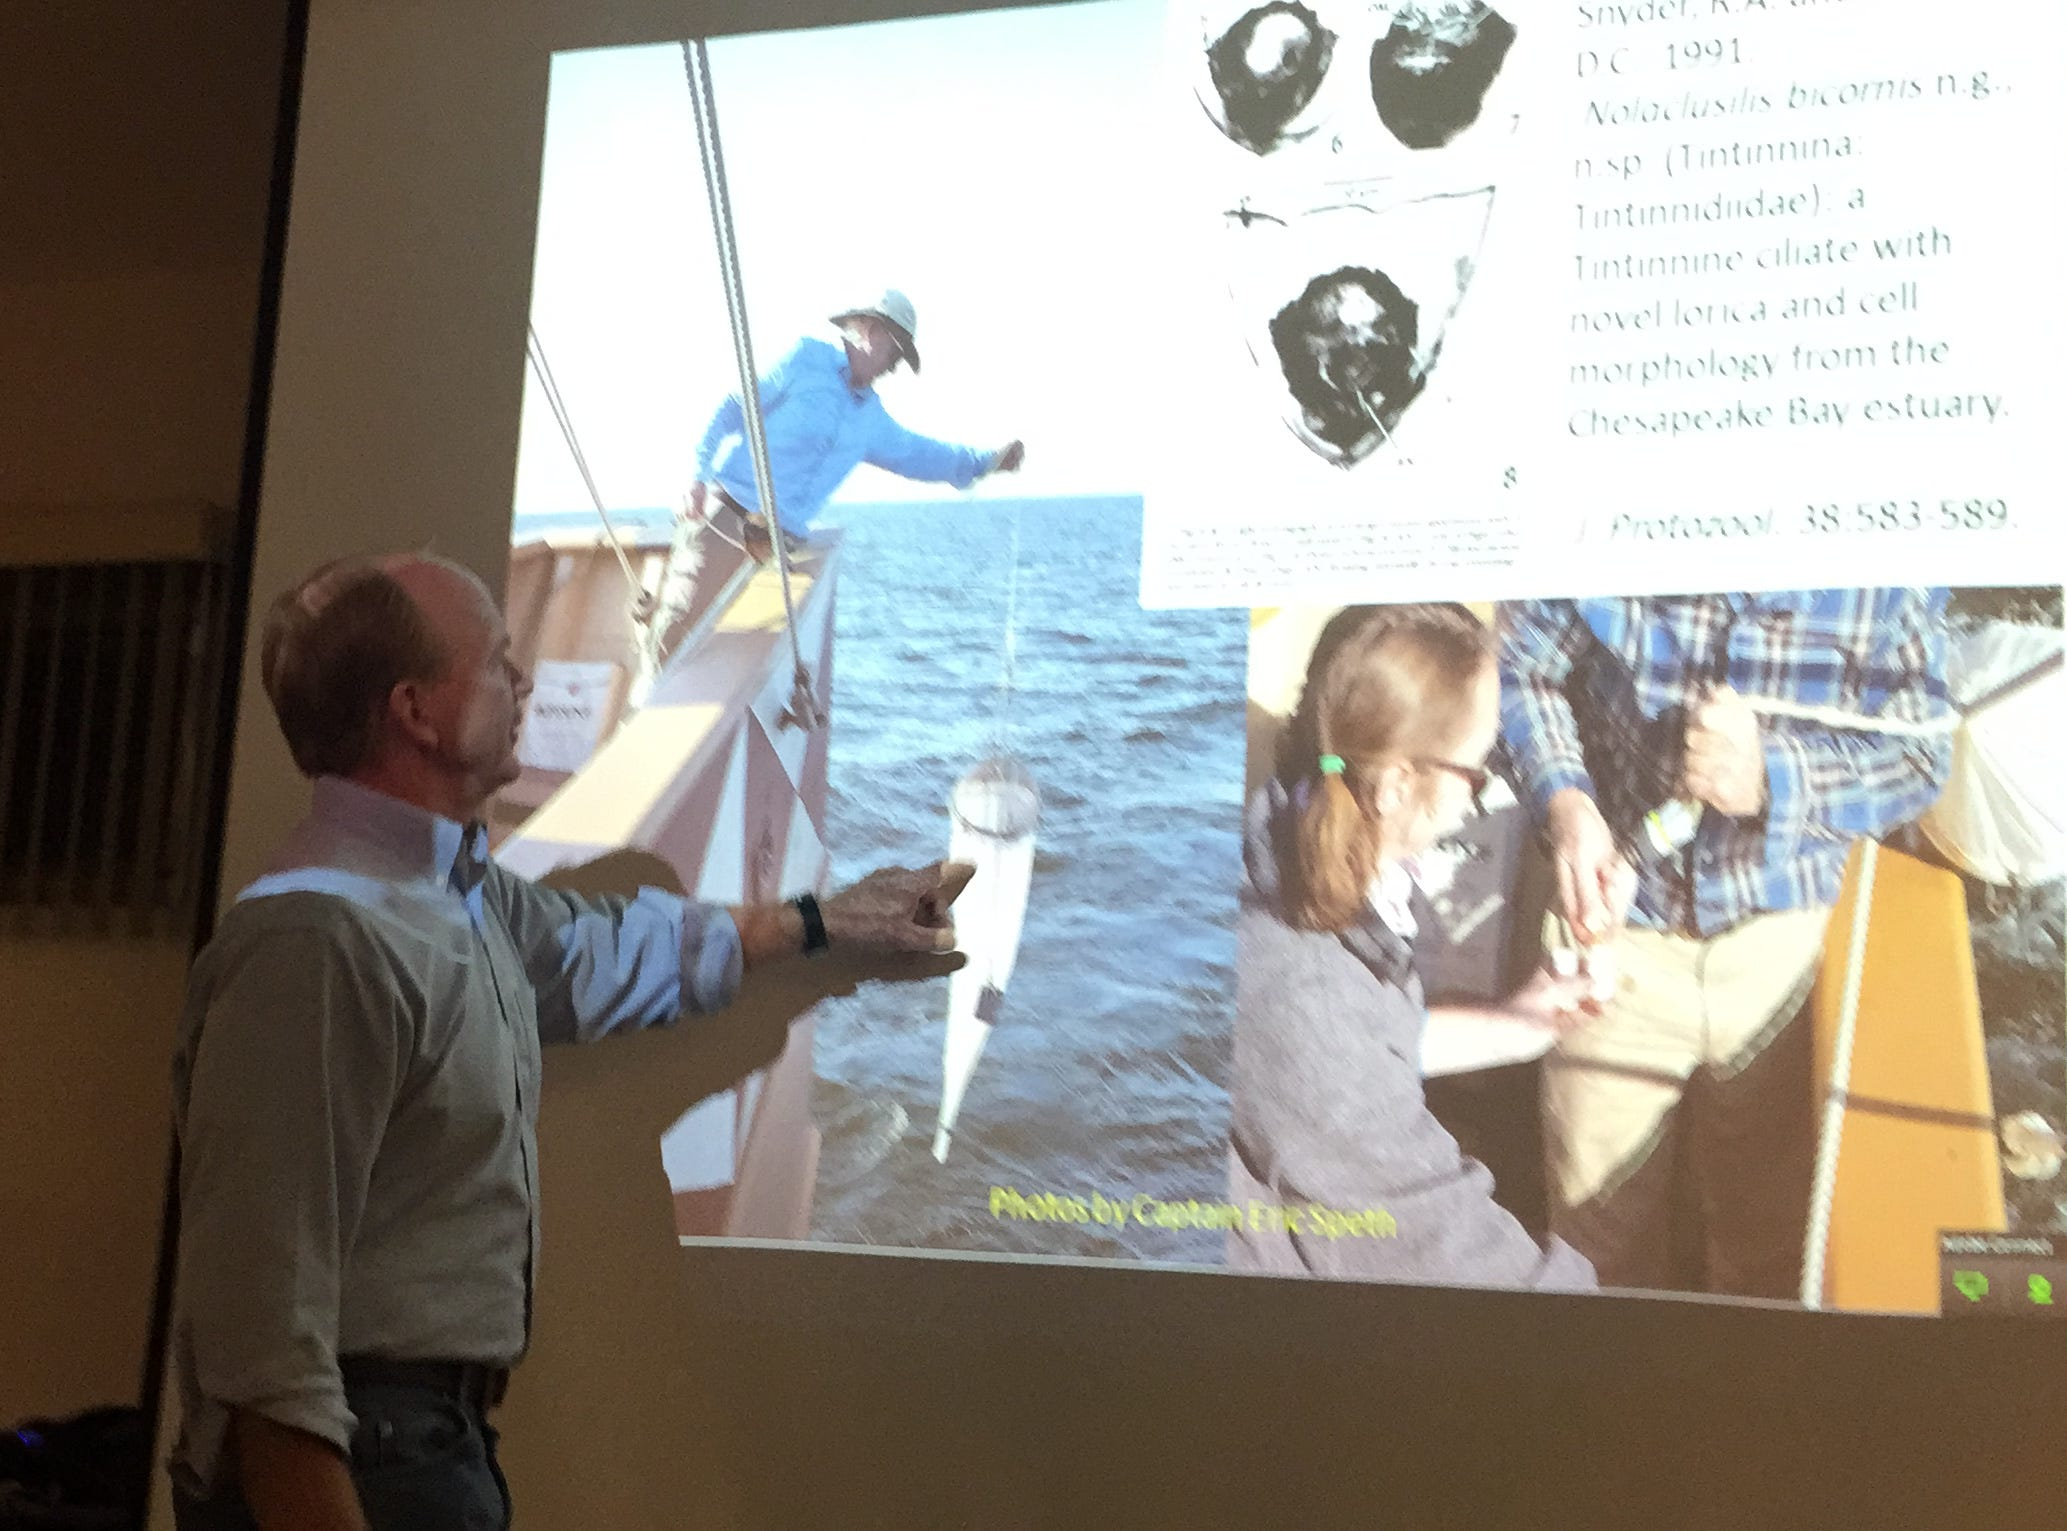 Dick Snyder, director of VIMS Eastern Shore Laboratory, talks to a community group on Wednesday, Nov. 7, 2018 about doing modern scientific research during a voyage aboard the historic replica ship 'Godspeed.'